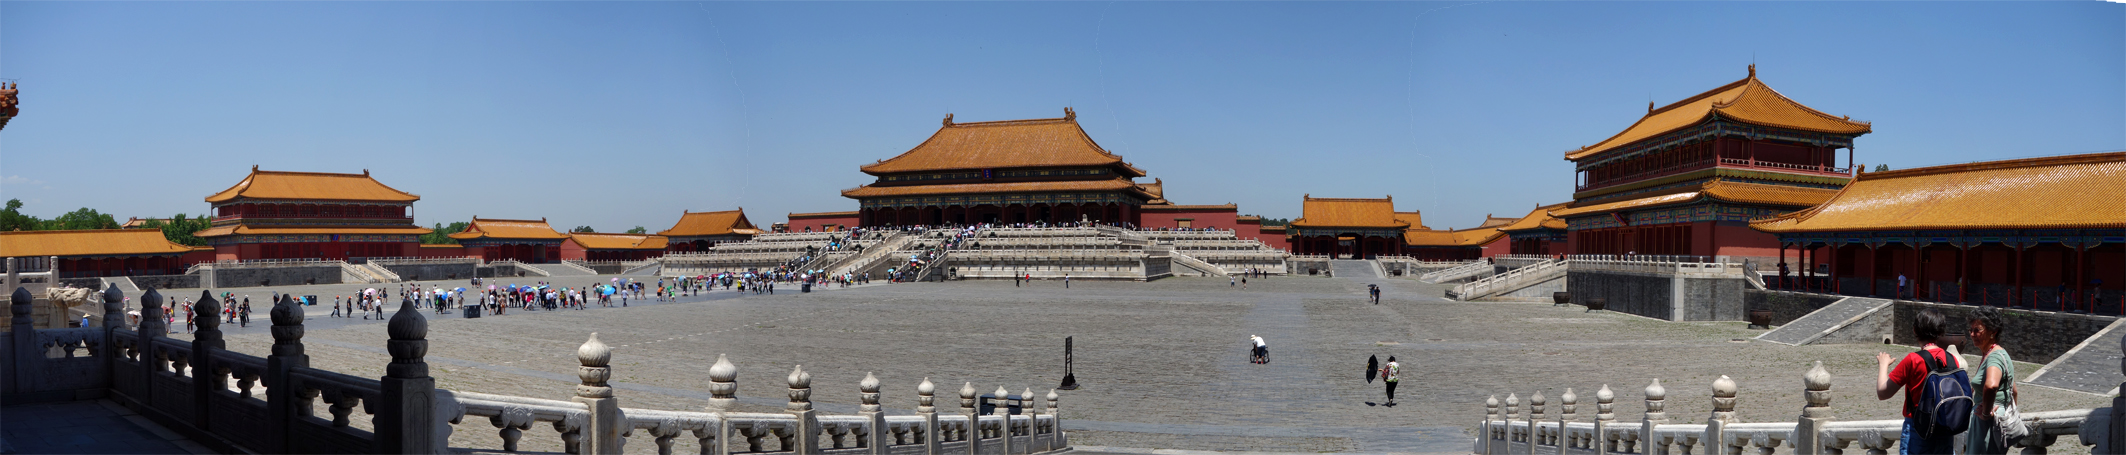 Beijing Forbidden City Inner courtyard